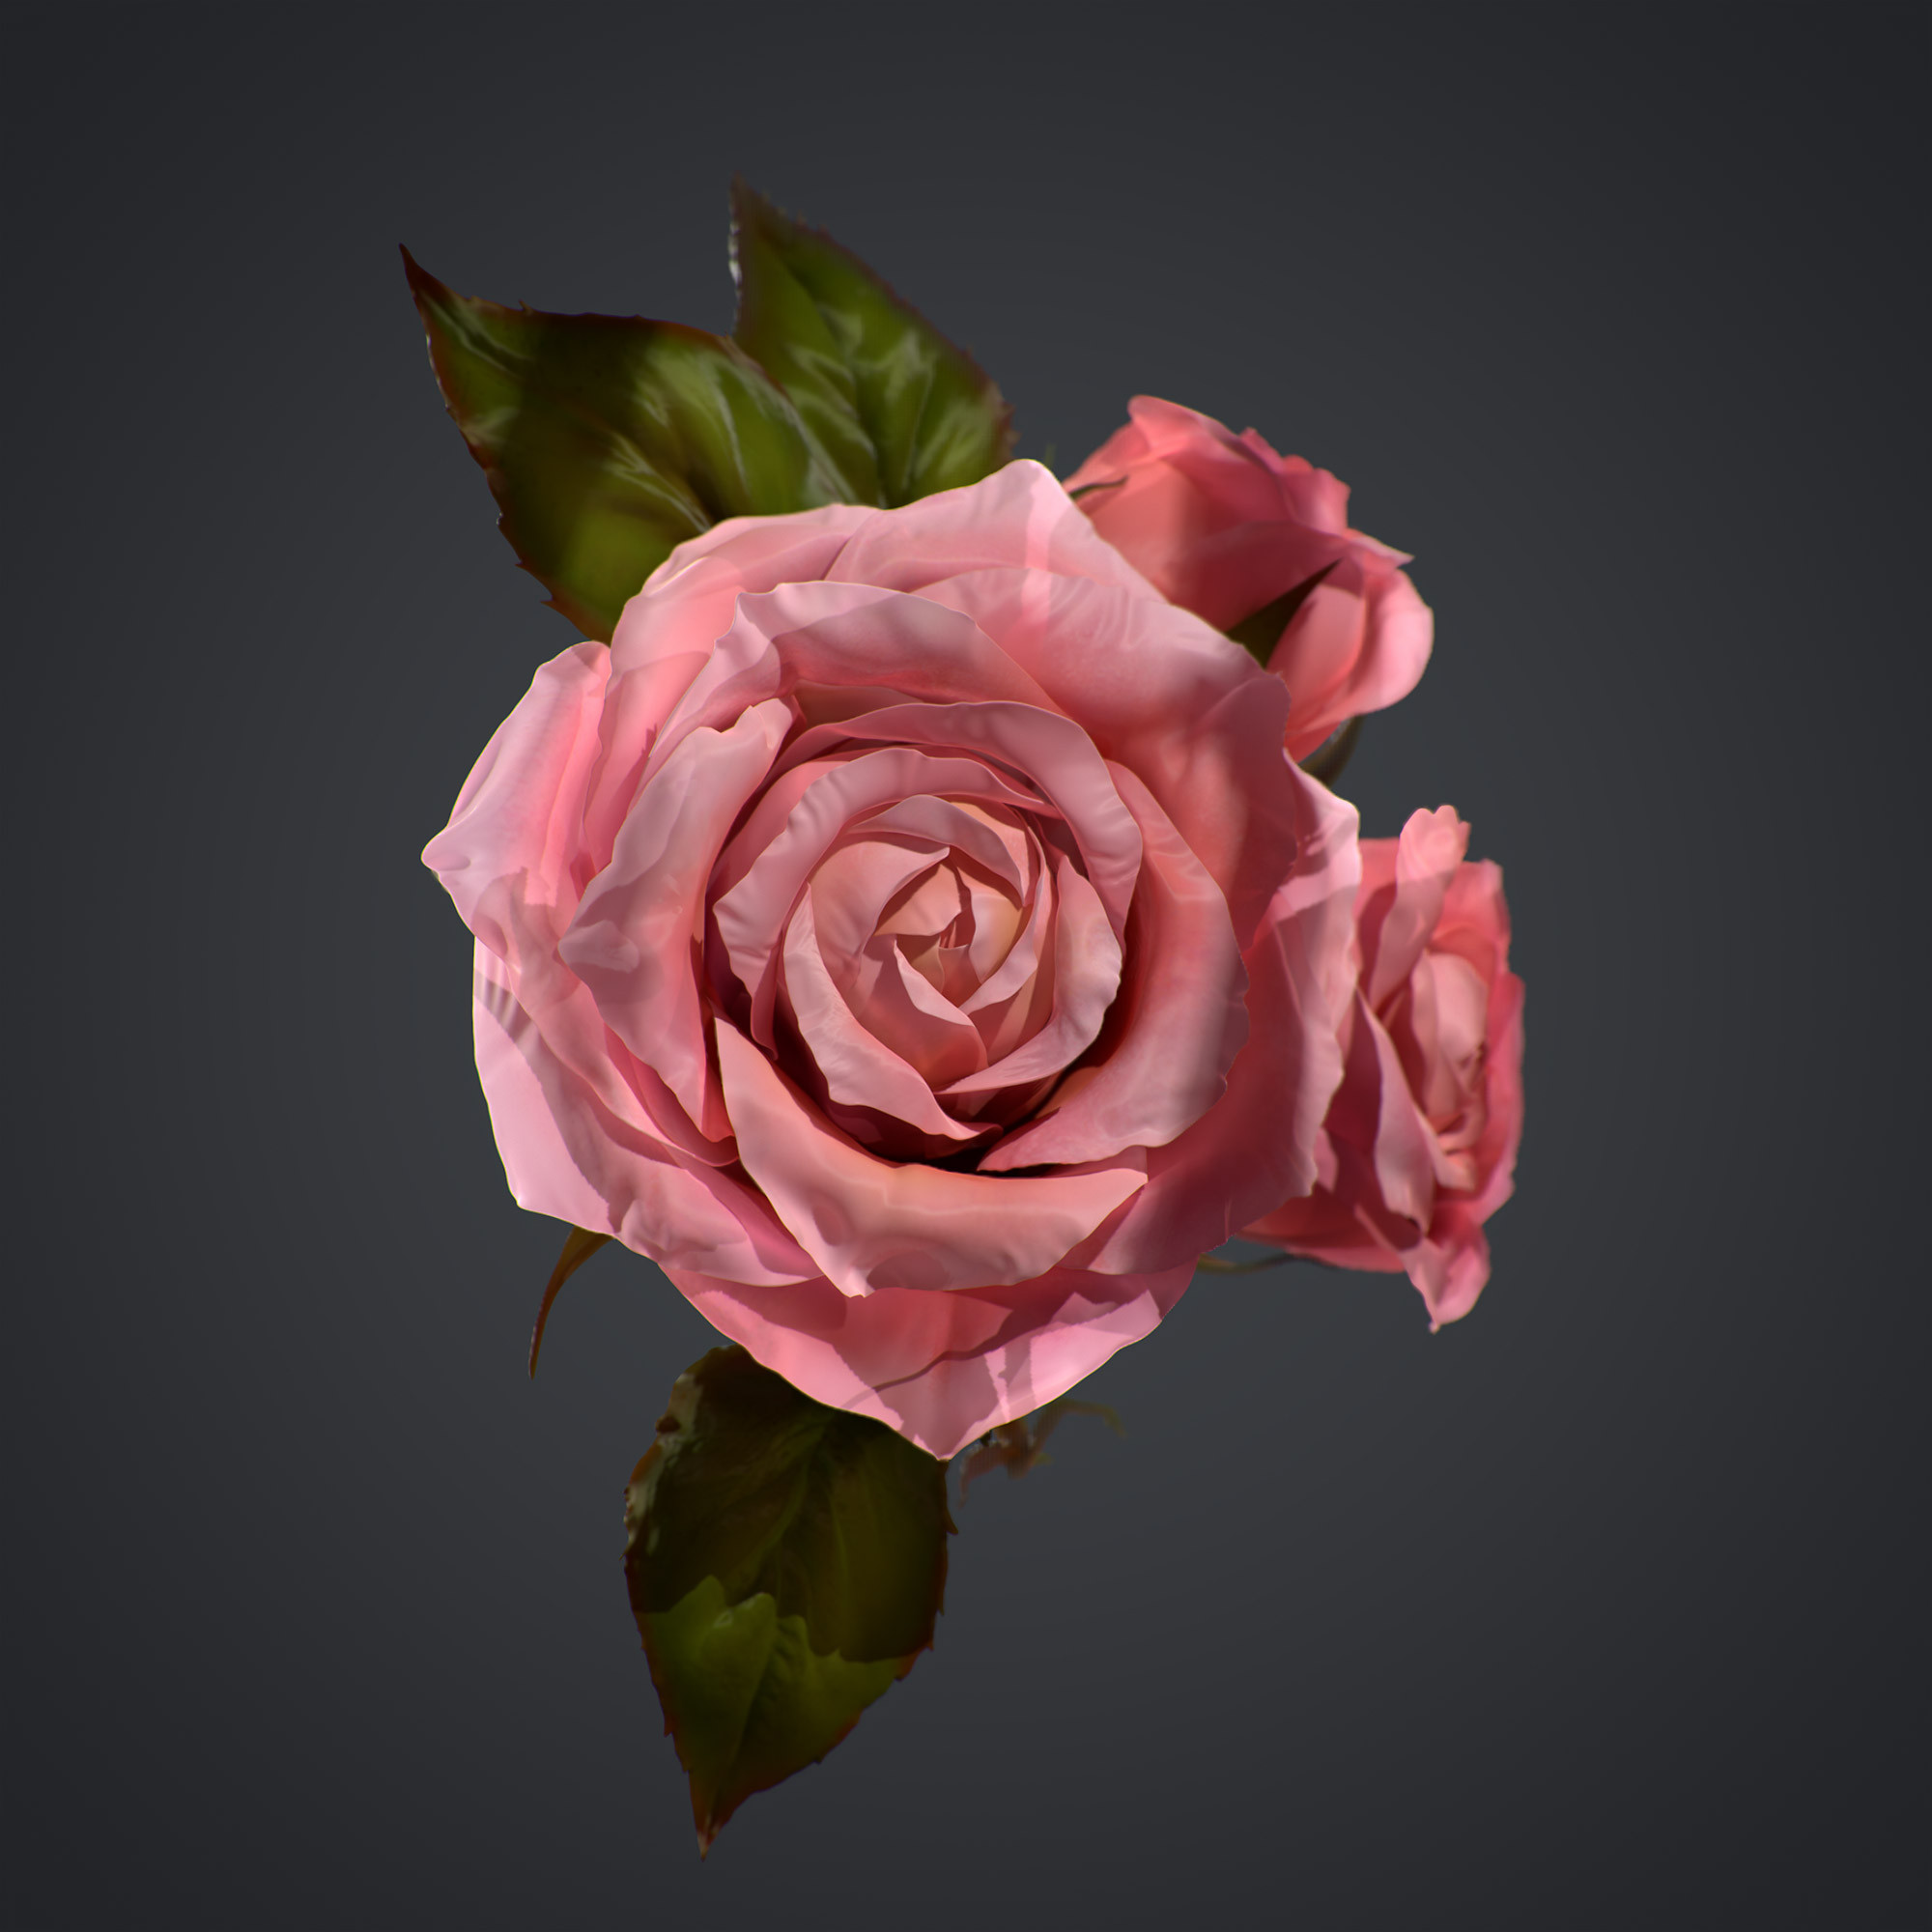 Rose - a study created to test Zbrush 2021's cloth brushes, rendered in Marmoset Toolbag 3